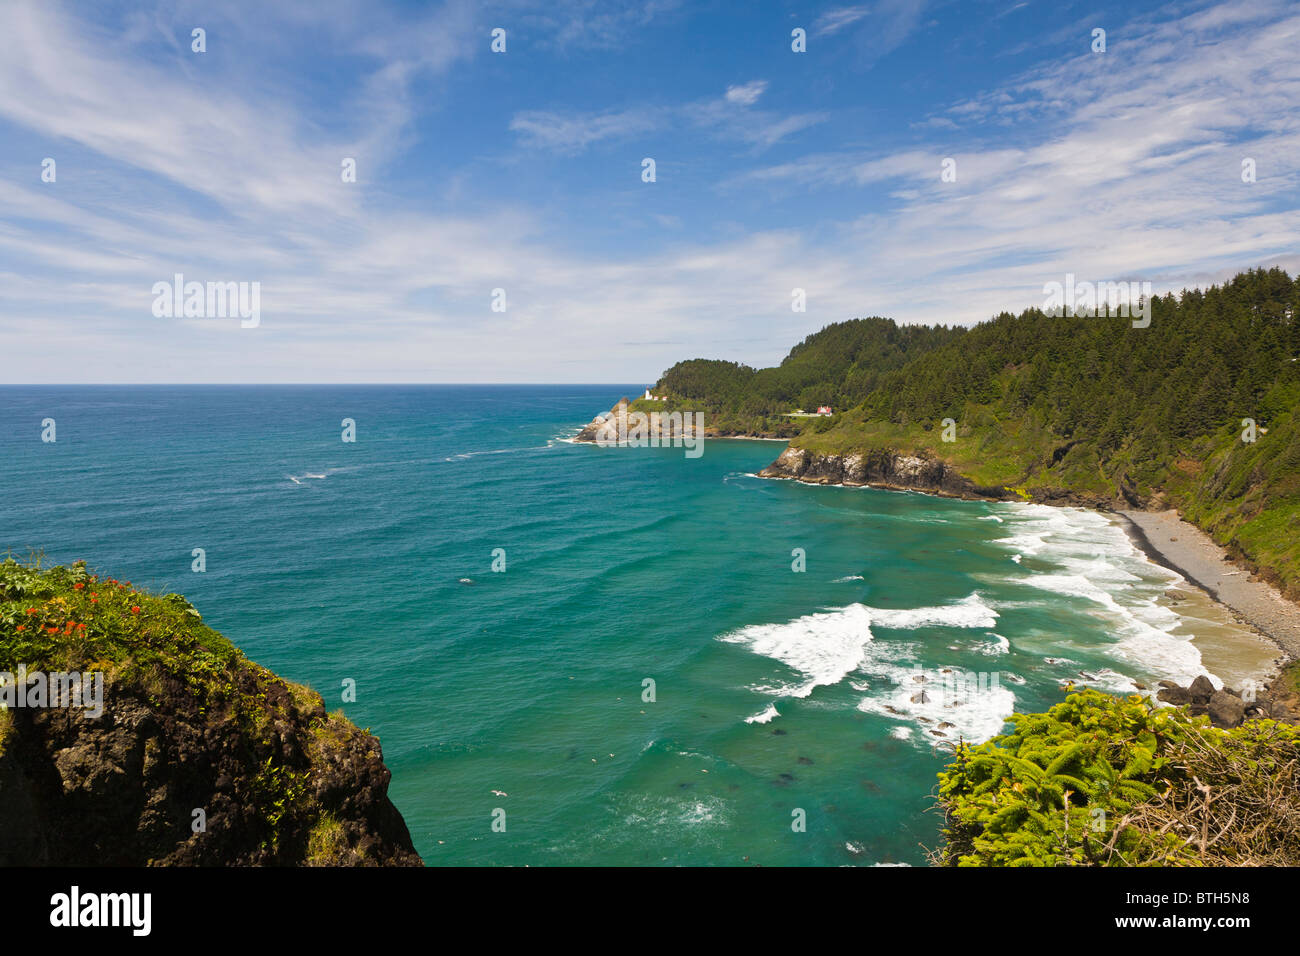 Heceta Head Lighthouse on the Pacific Ocean coast of Oregon Heceta Head Lighthouse on the Pacific Ocean coast of - Stock Image